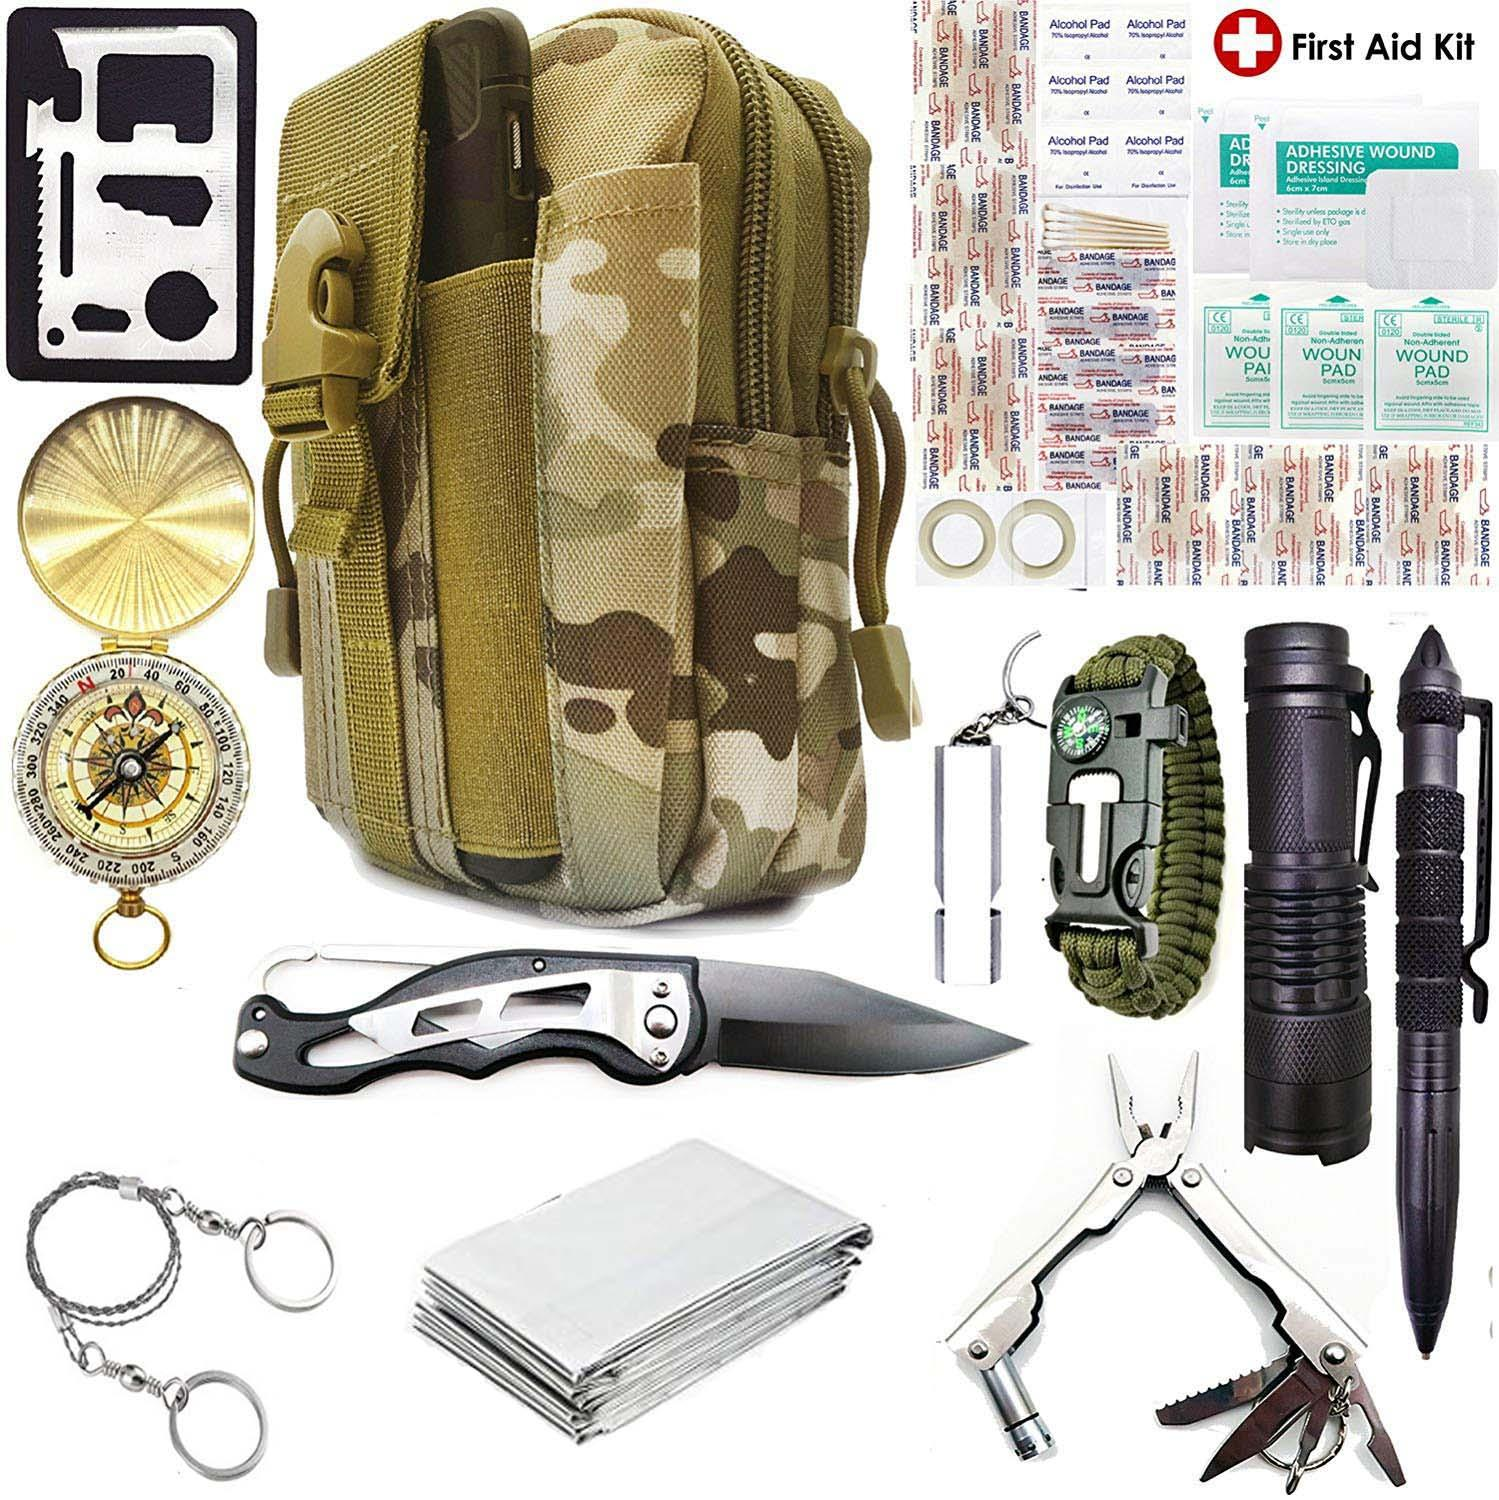 Survival Kit Set 40 In 1 Military Outdoor Tourism Multifunction First Aid SOS EDC Emergency Camping Tool Survival Kit Knife